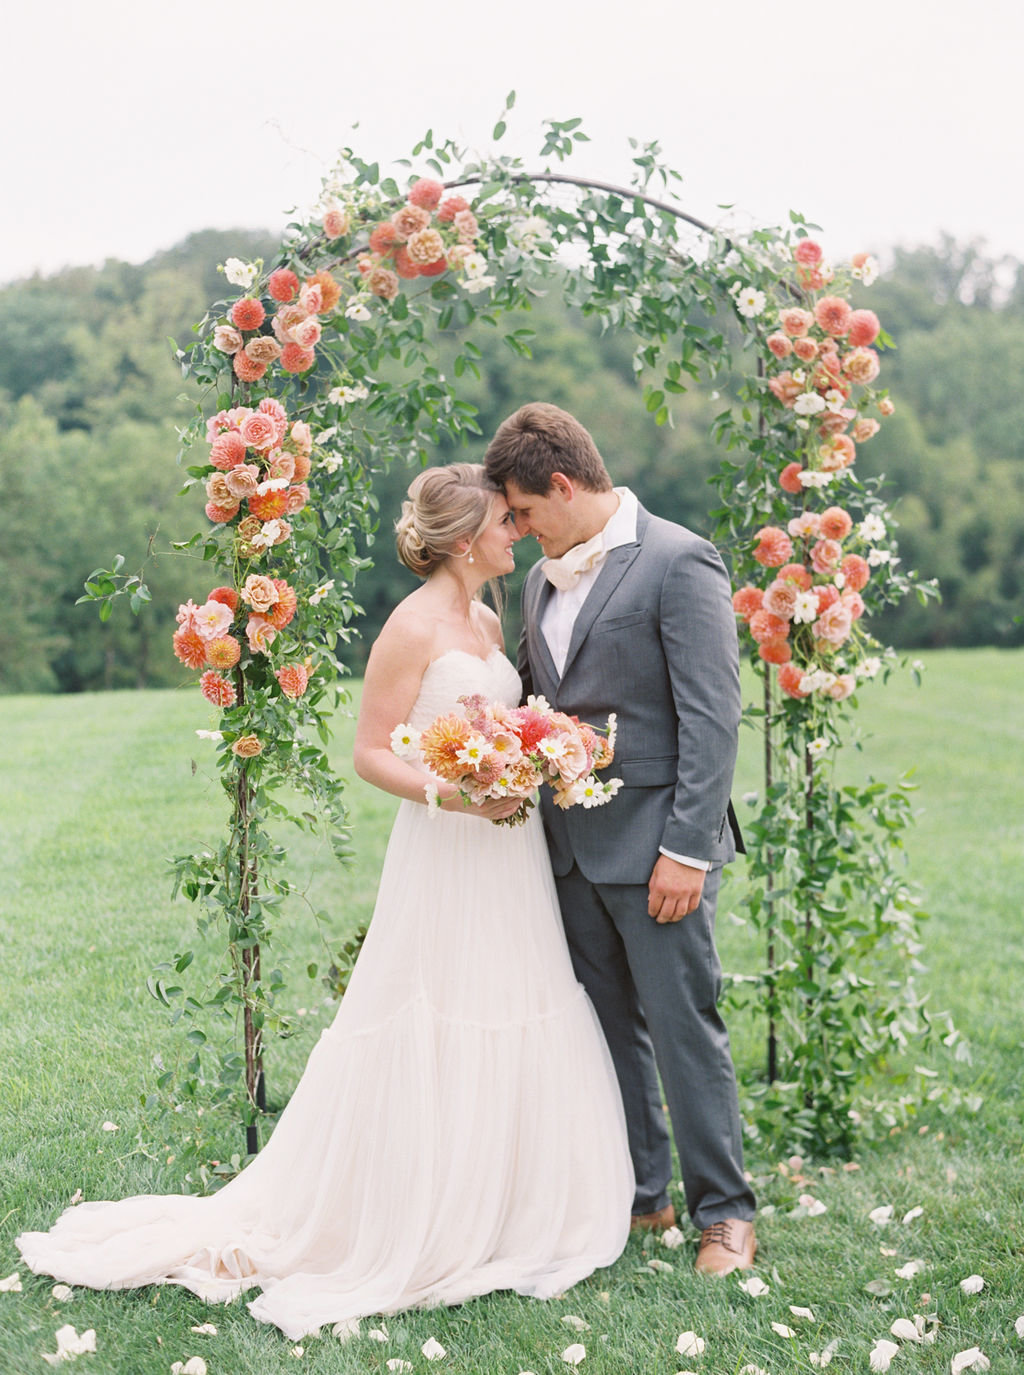 Roots Floral Design Kaytee Stice Florist Flowers Wedding Special Occassion Party Organic Whimsical Natural Adventurous Kentucky Ohio13